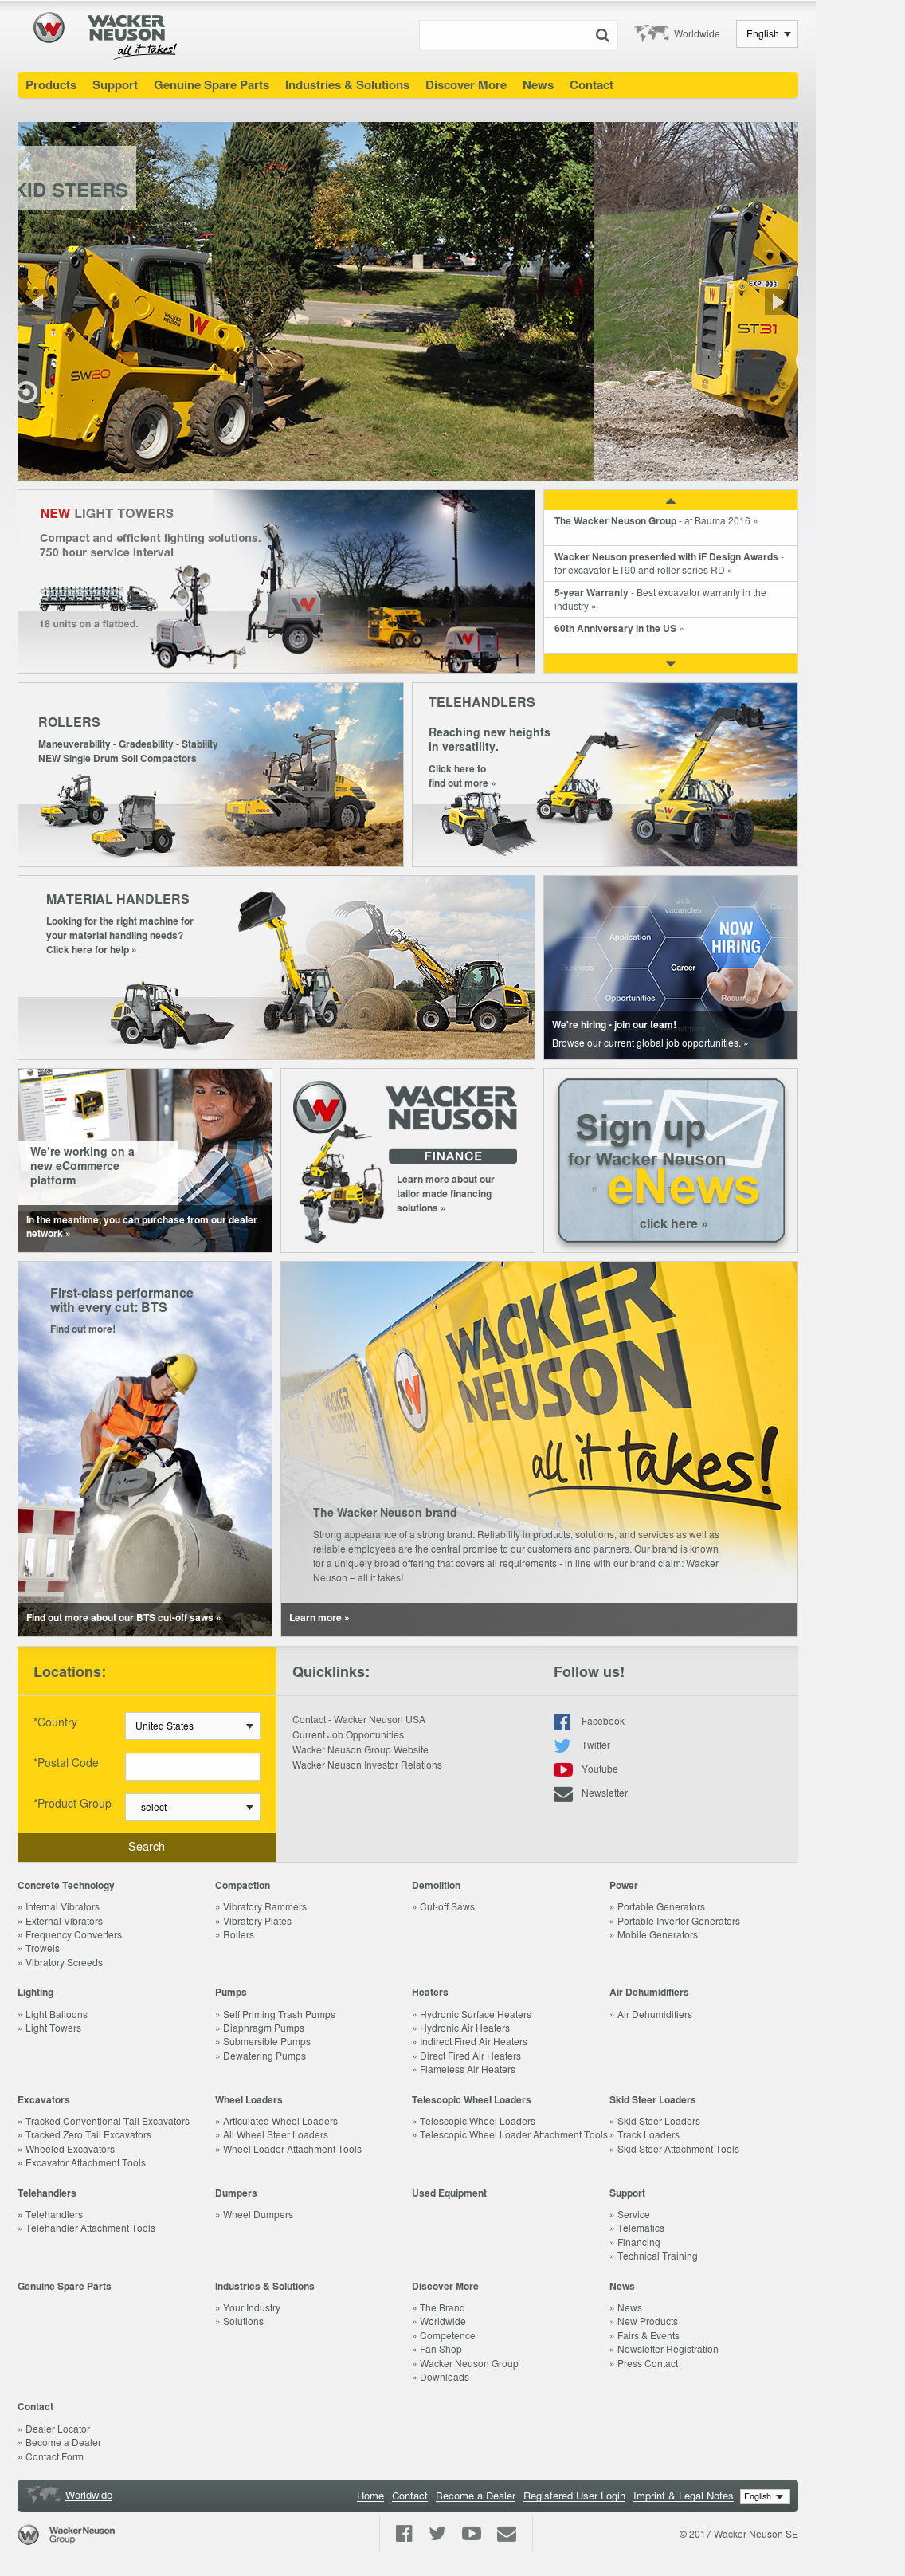 Wacker Neuson Competitors, Revenue and Employees - Owler